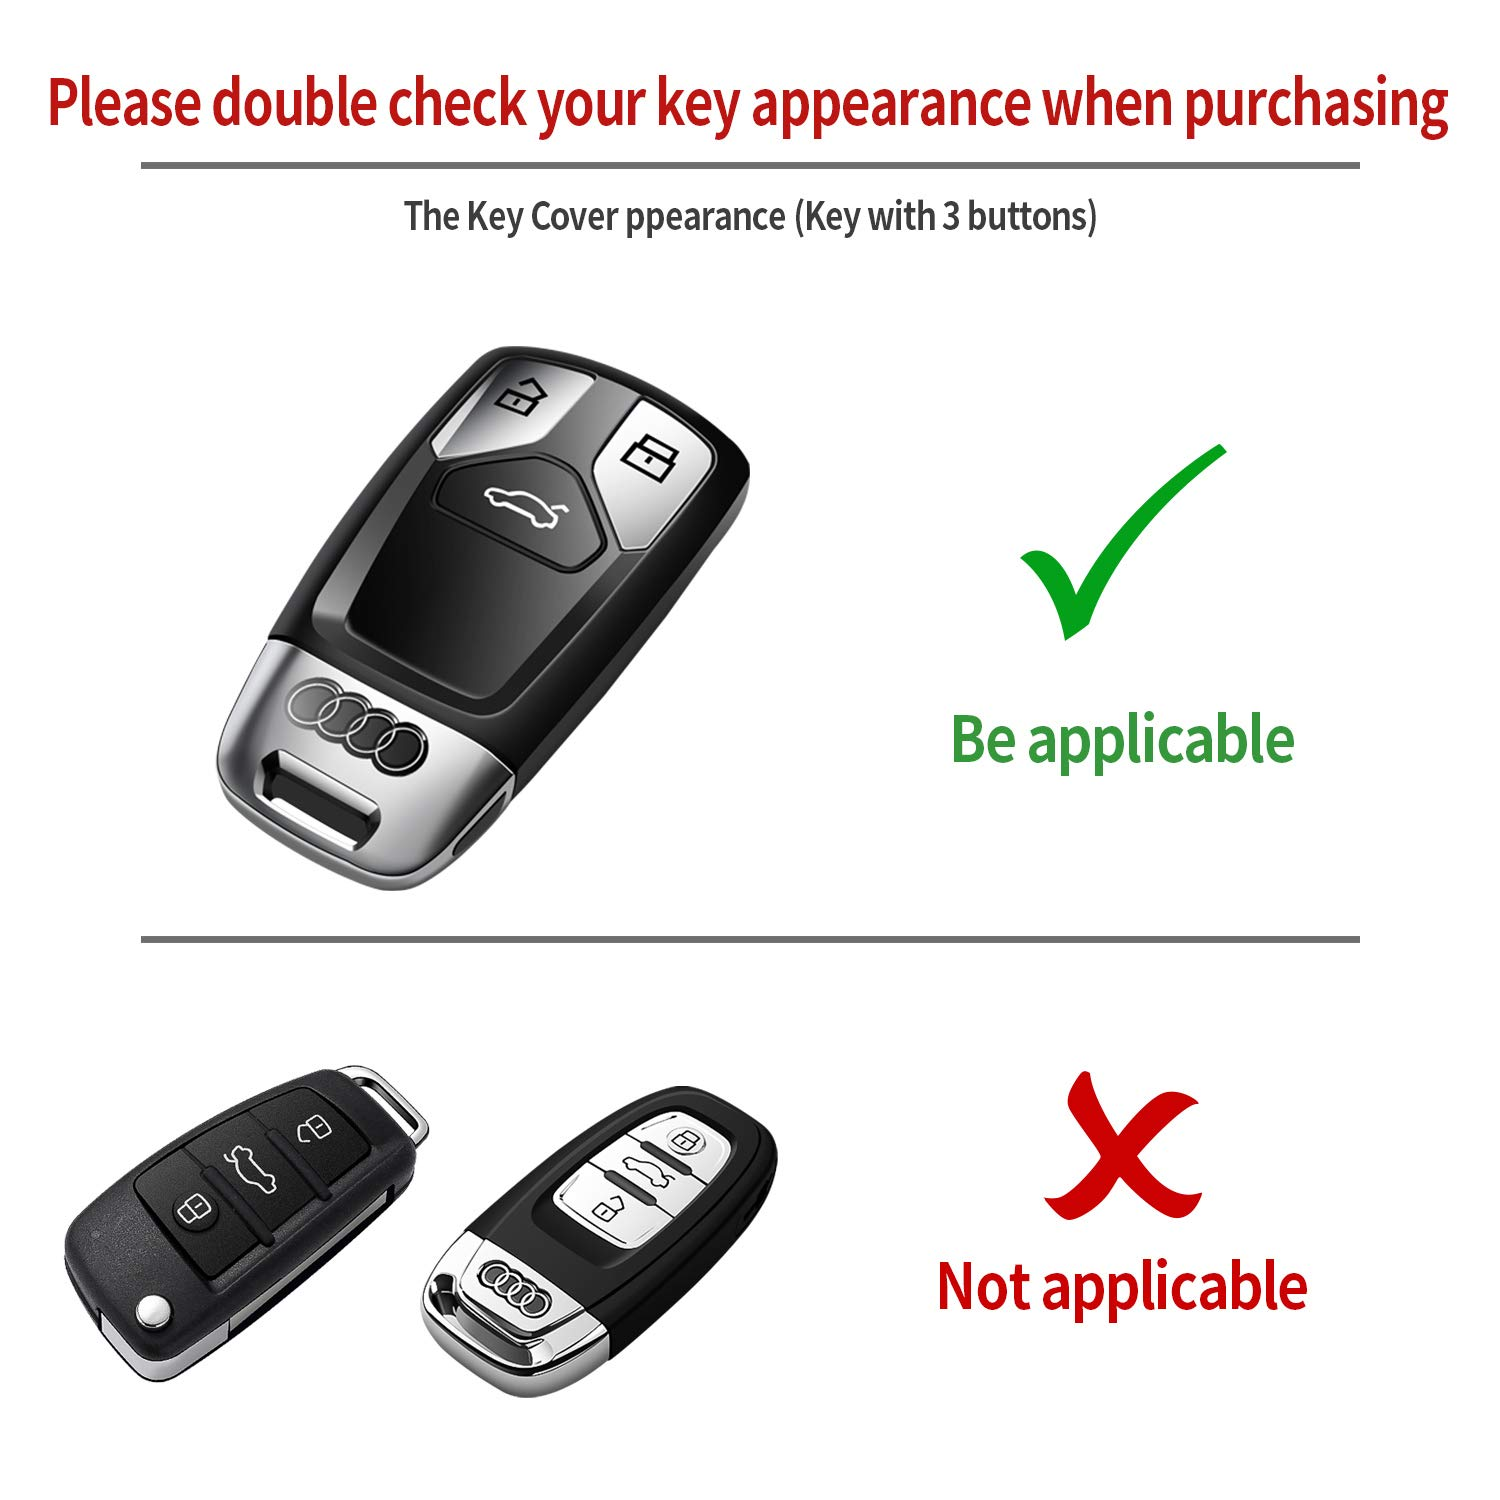 Tukellen for Audi Key Fob Cover Special Soft TPU Key Case Cover Protector Compatible with Audi A4 Q7 Q5 TT A3 A6 SQ5 R8 S5 Smart Key Red